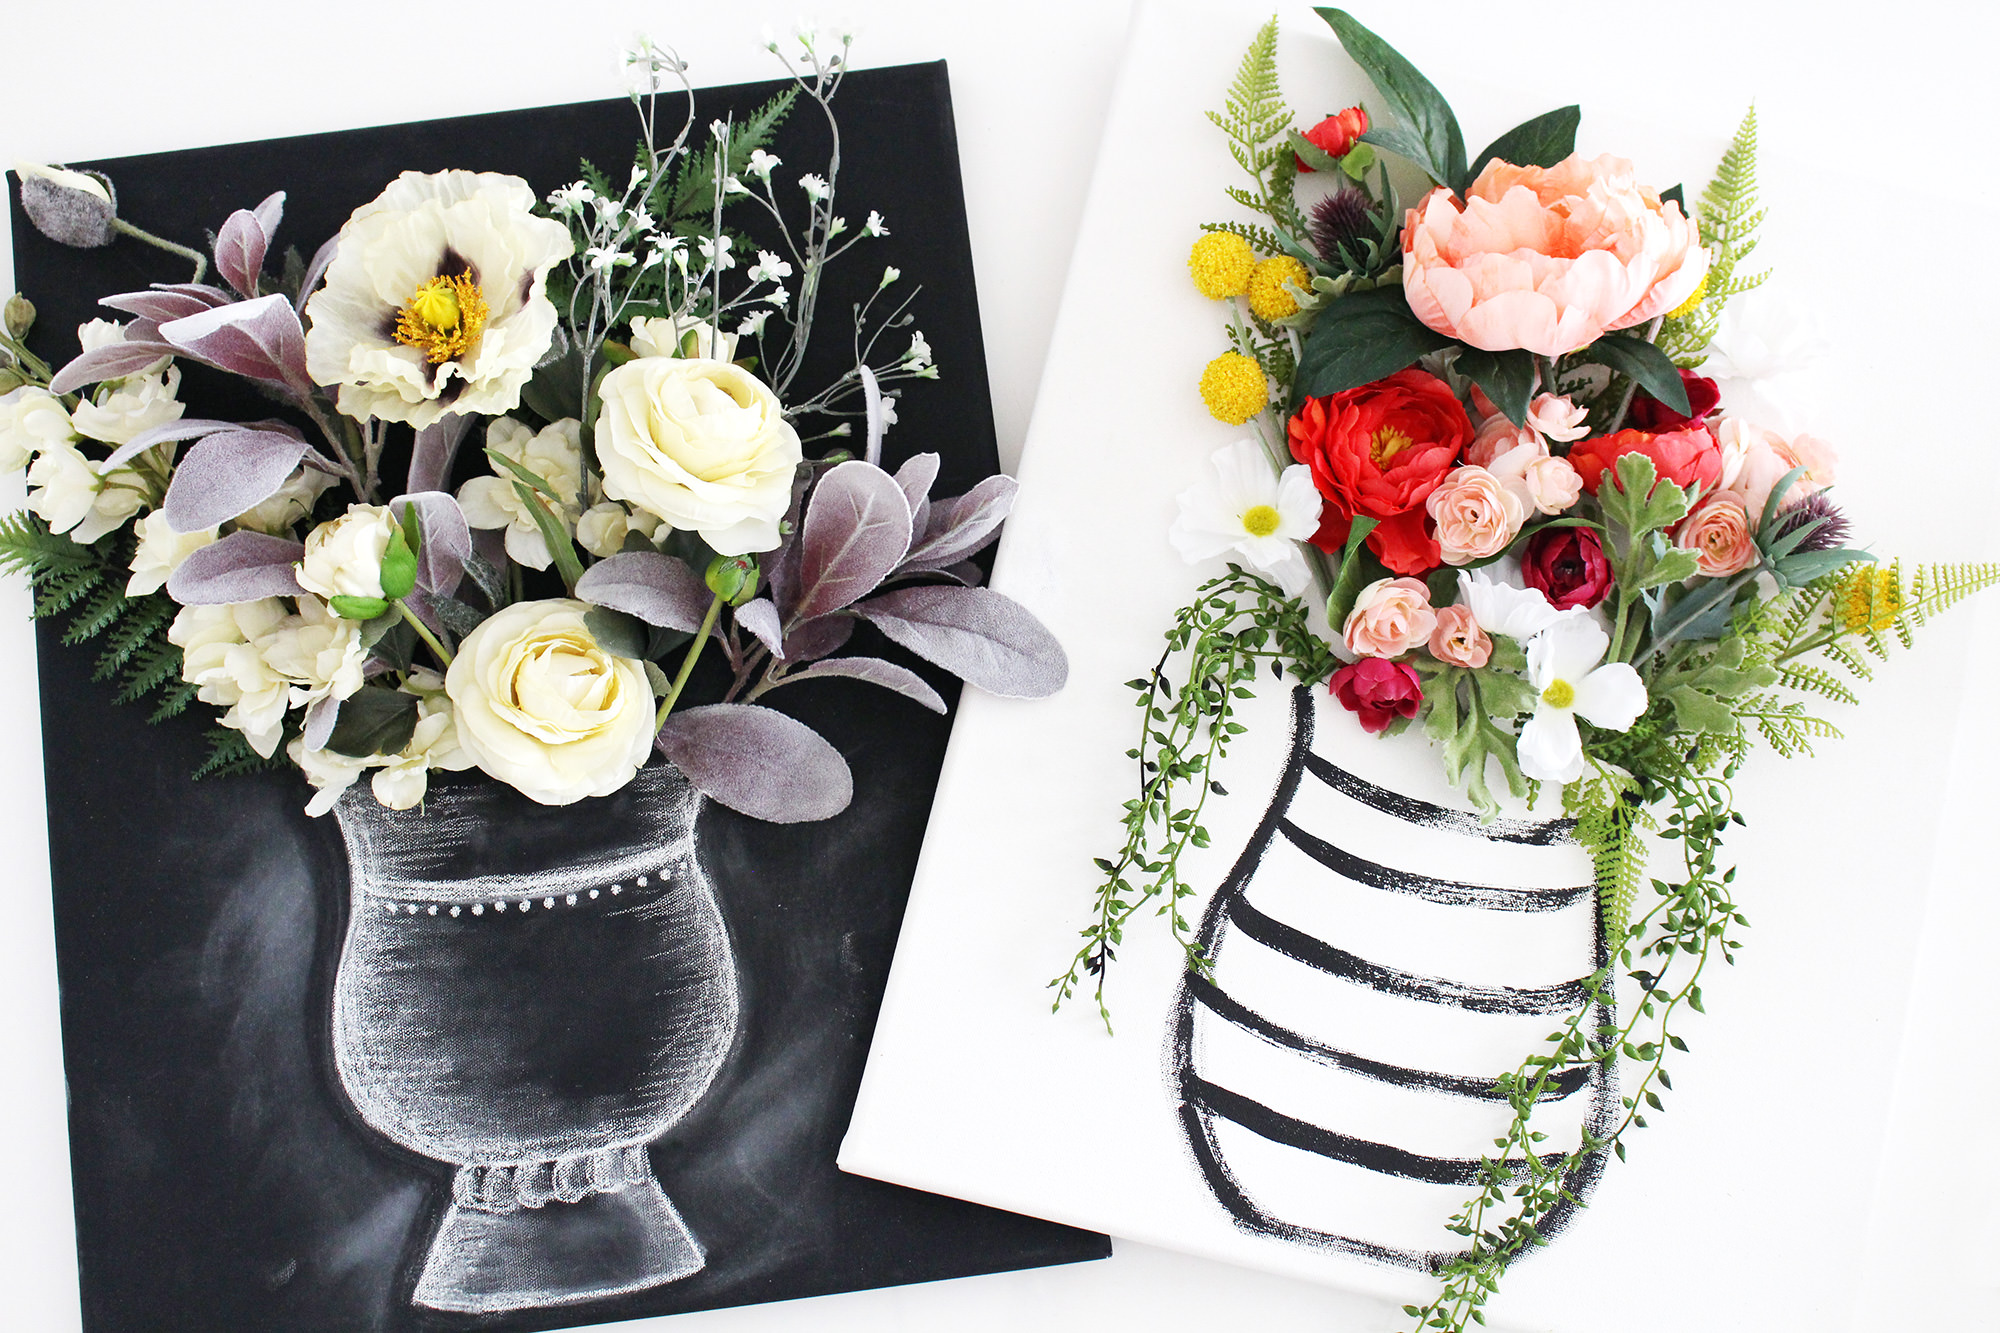 Create stunning 3-D flower canvas wall art using faux flowers and hand-drawn vases. Get the DIY on Lily & Val Living!